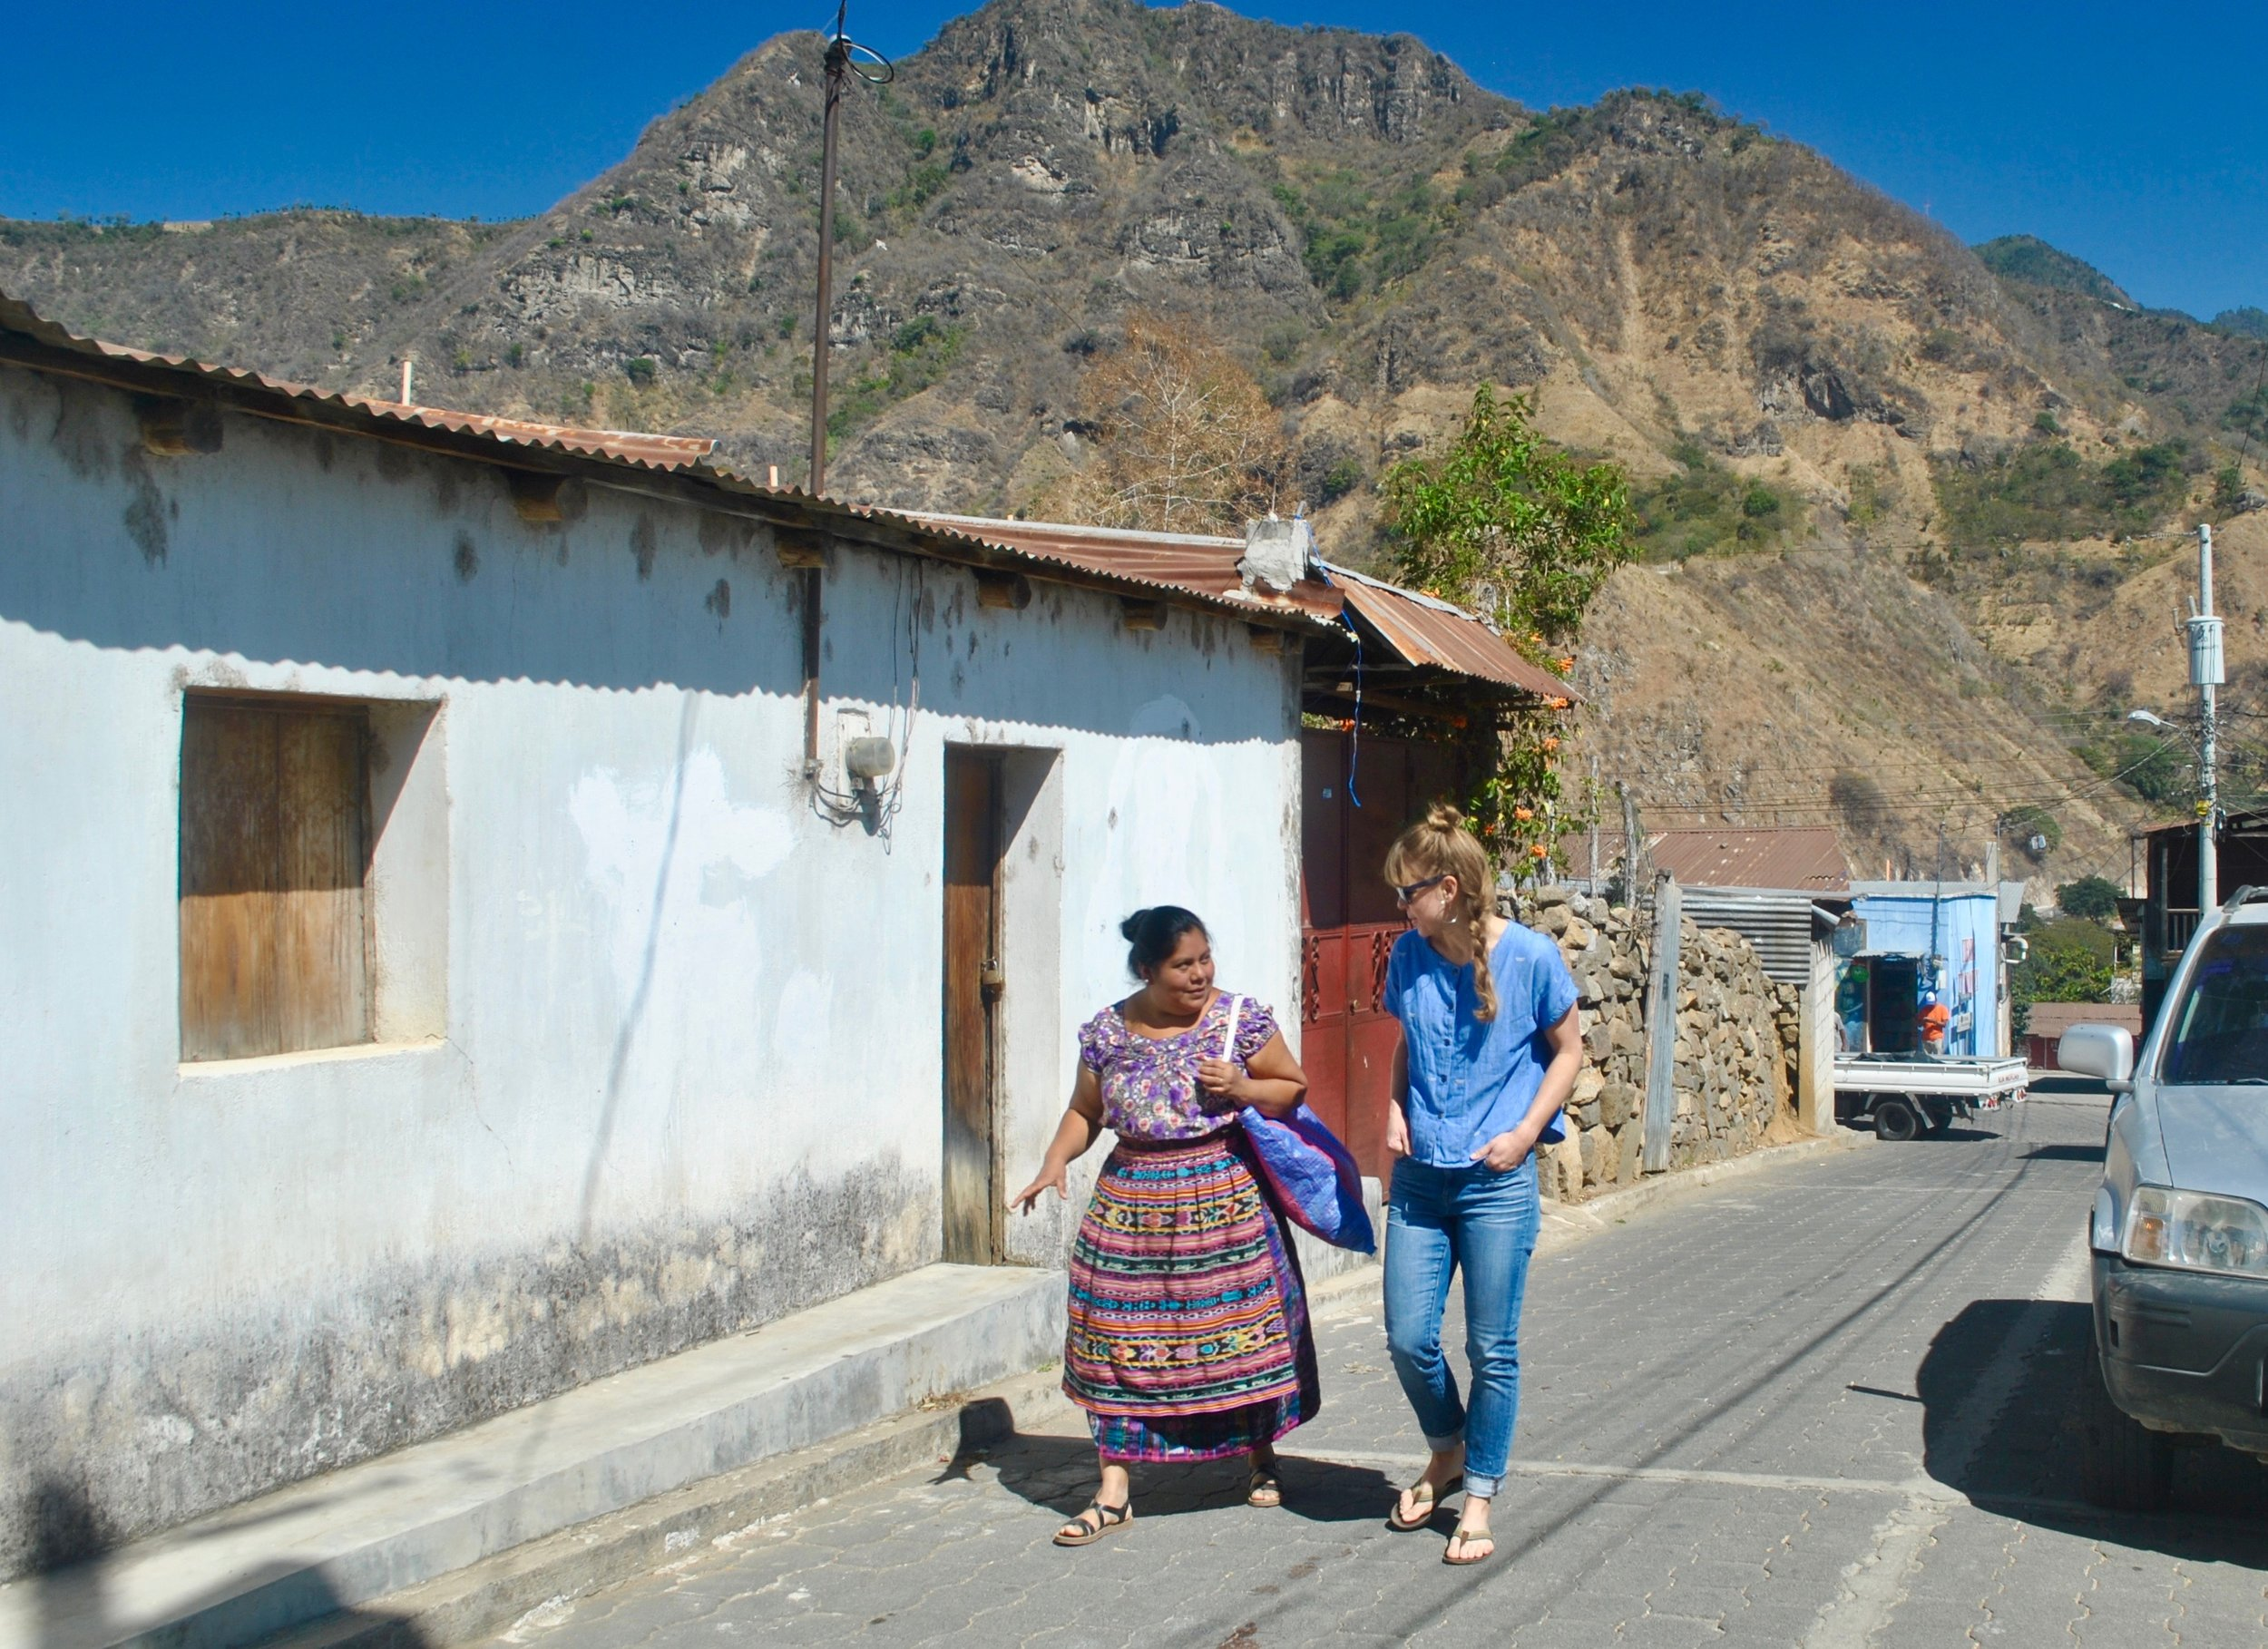 Amalia (President of our partner artisan cooperative in San Juan, Guatemala) walking with Amanda Zehner (Founder & CEO) to pick up products from one of our partner artisans.